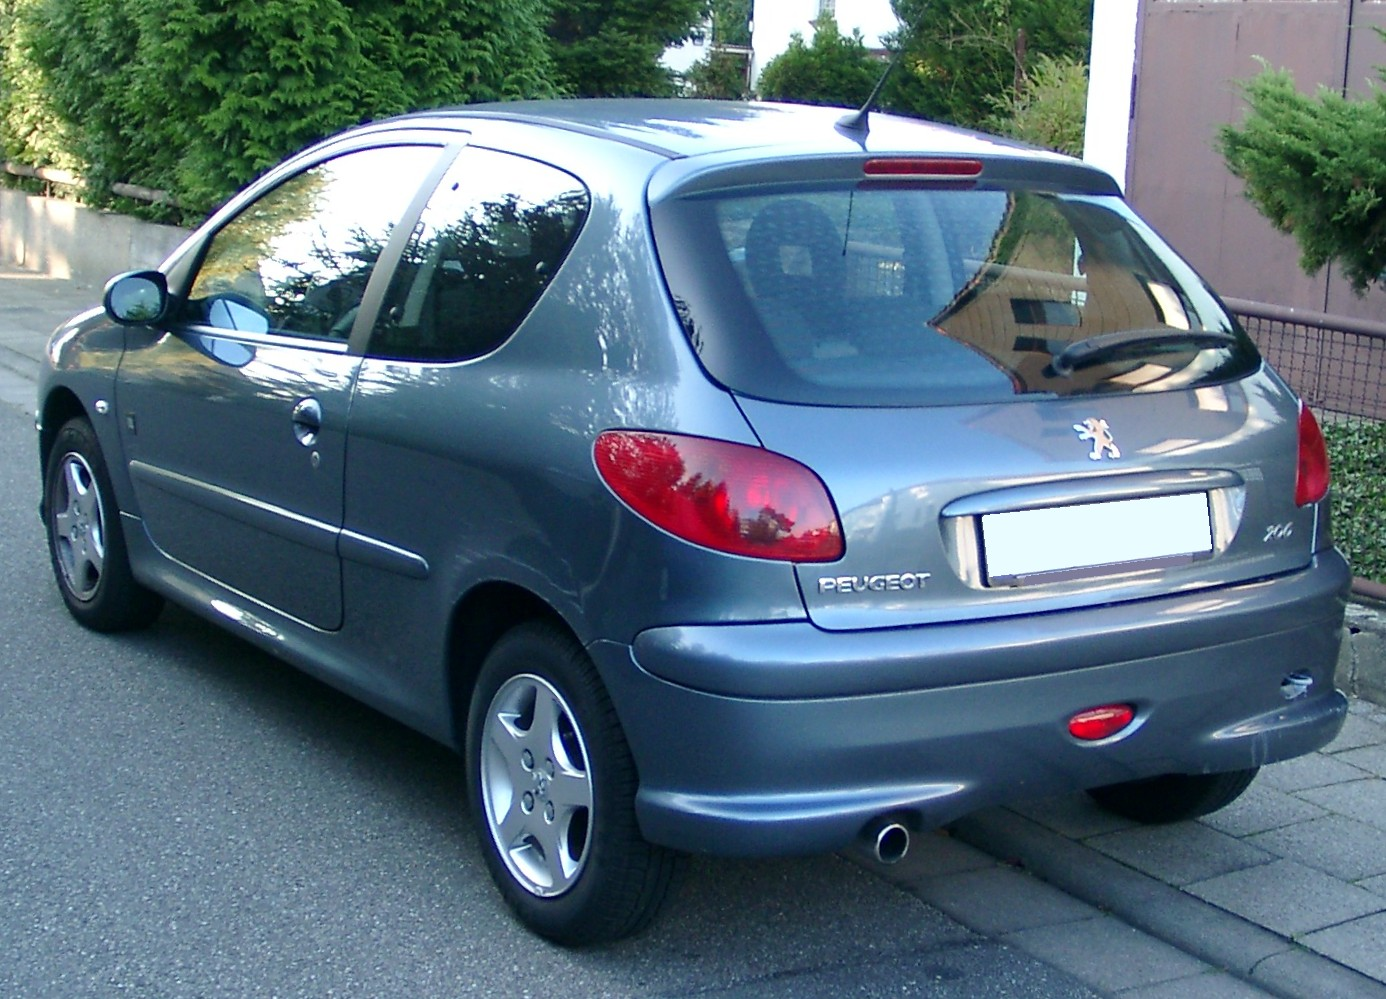 2007 peugeot 206 photos informations articles. Black Bedroom Furniture Sets. Home Design Ideas